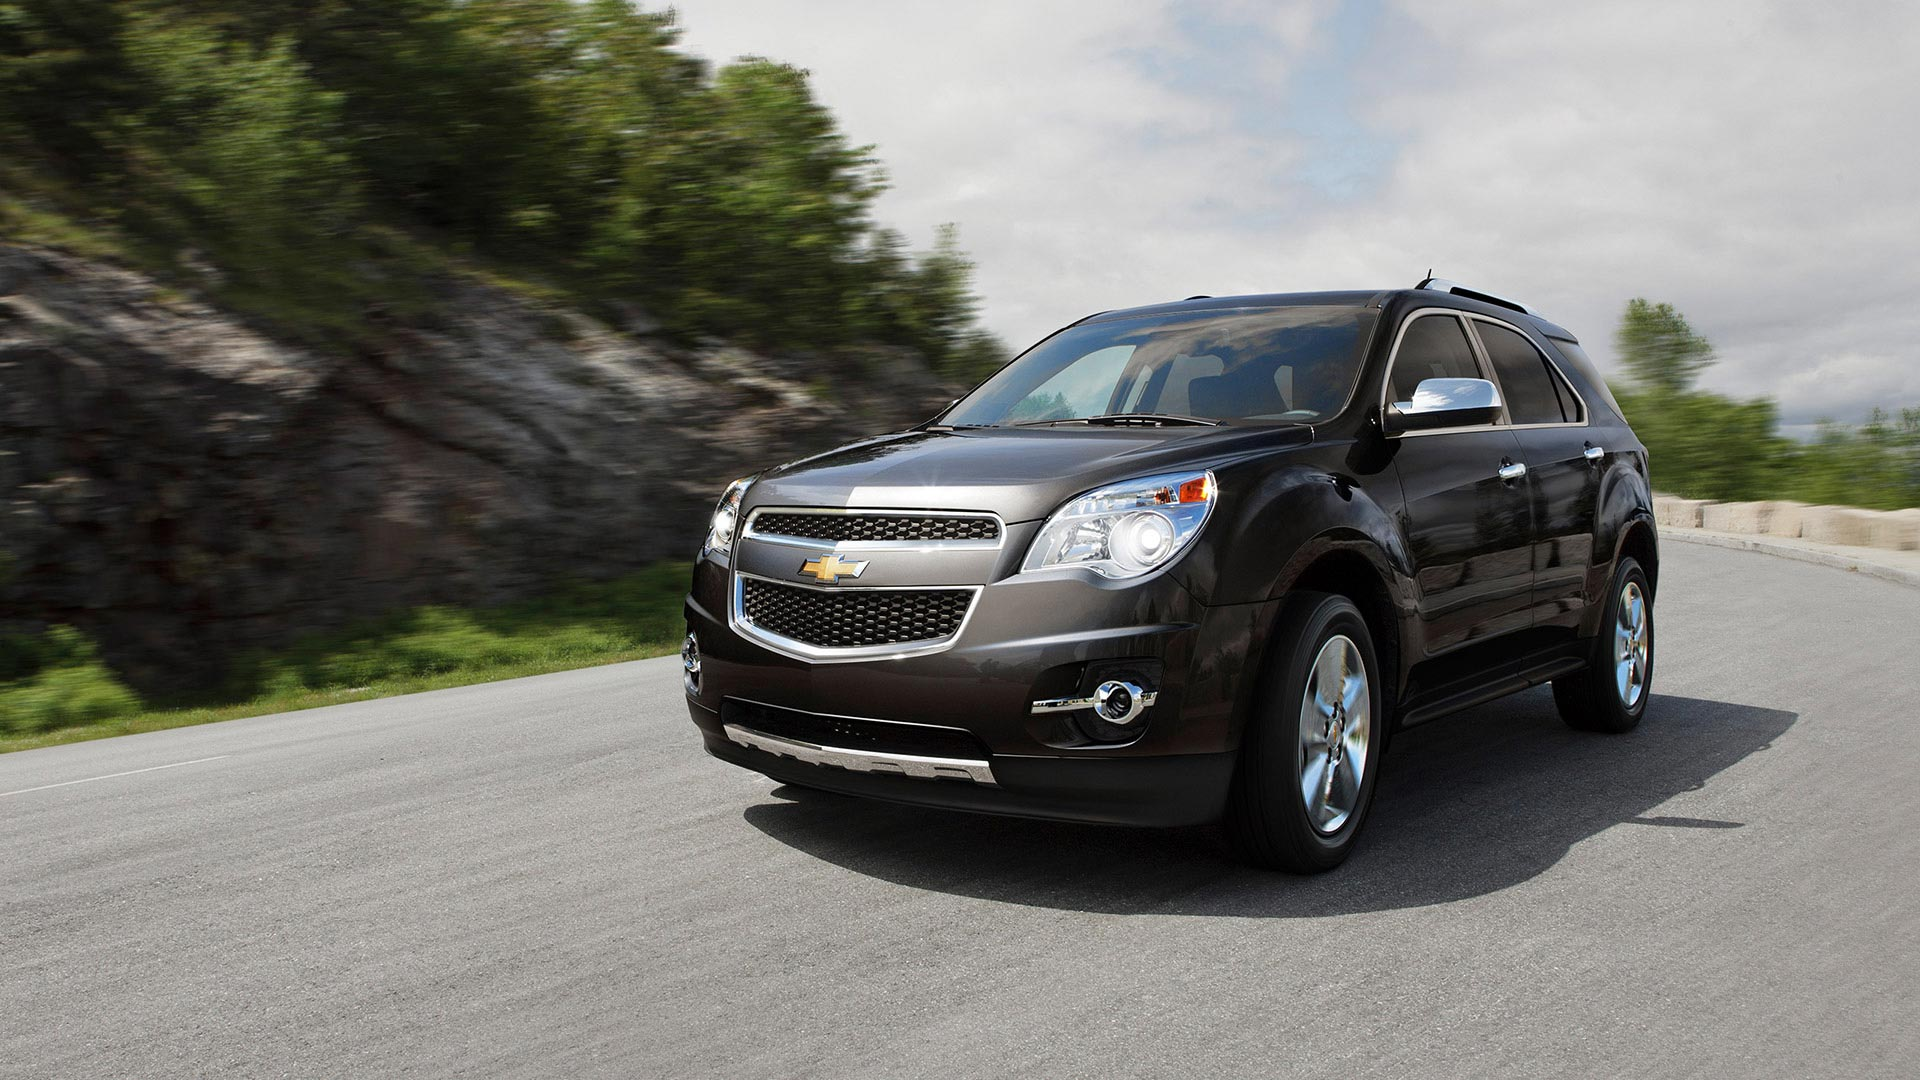 What kind of oil does a 2010 chevy equinox take? Kgb